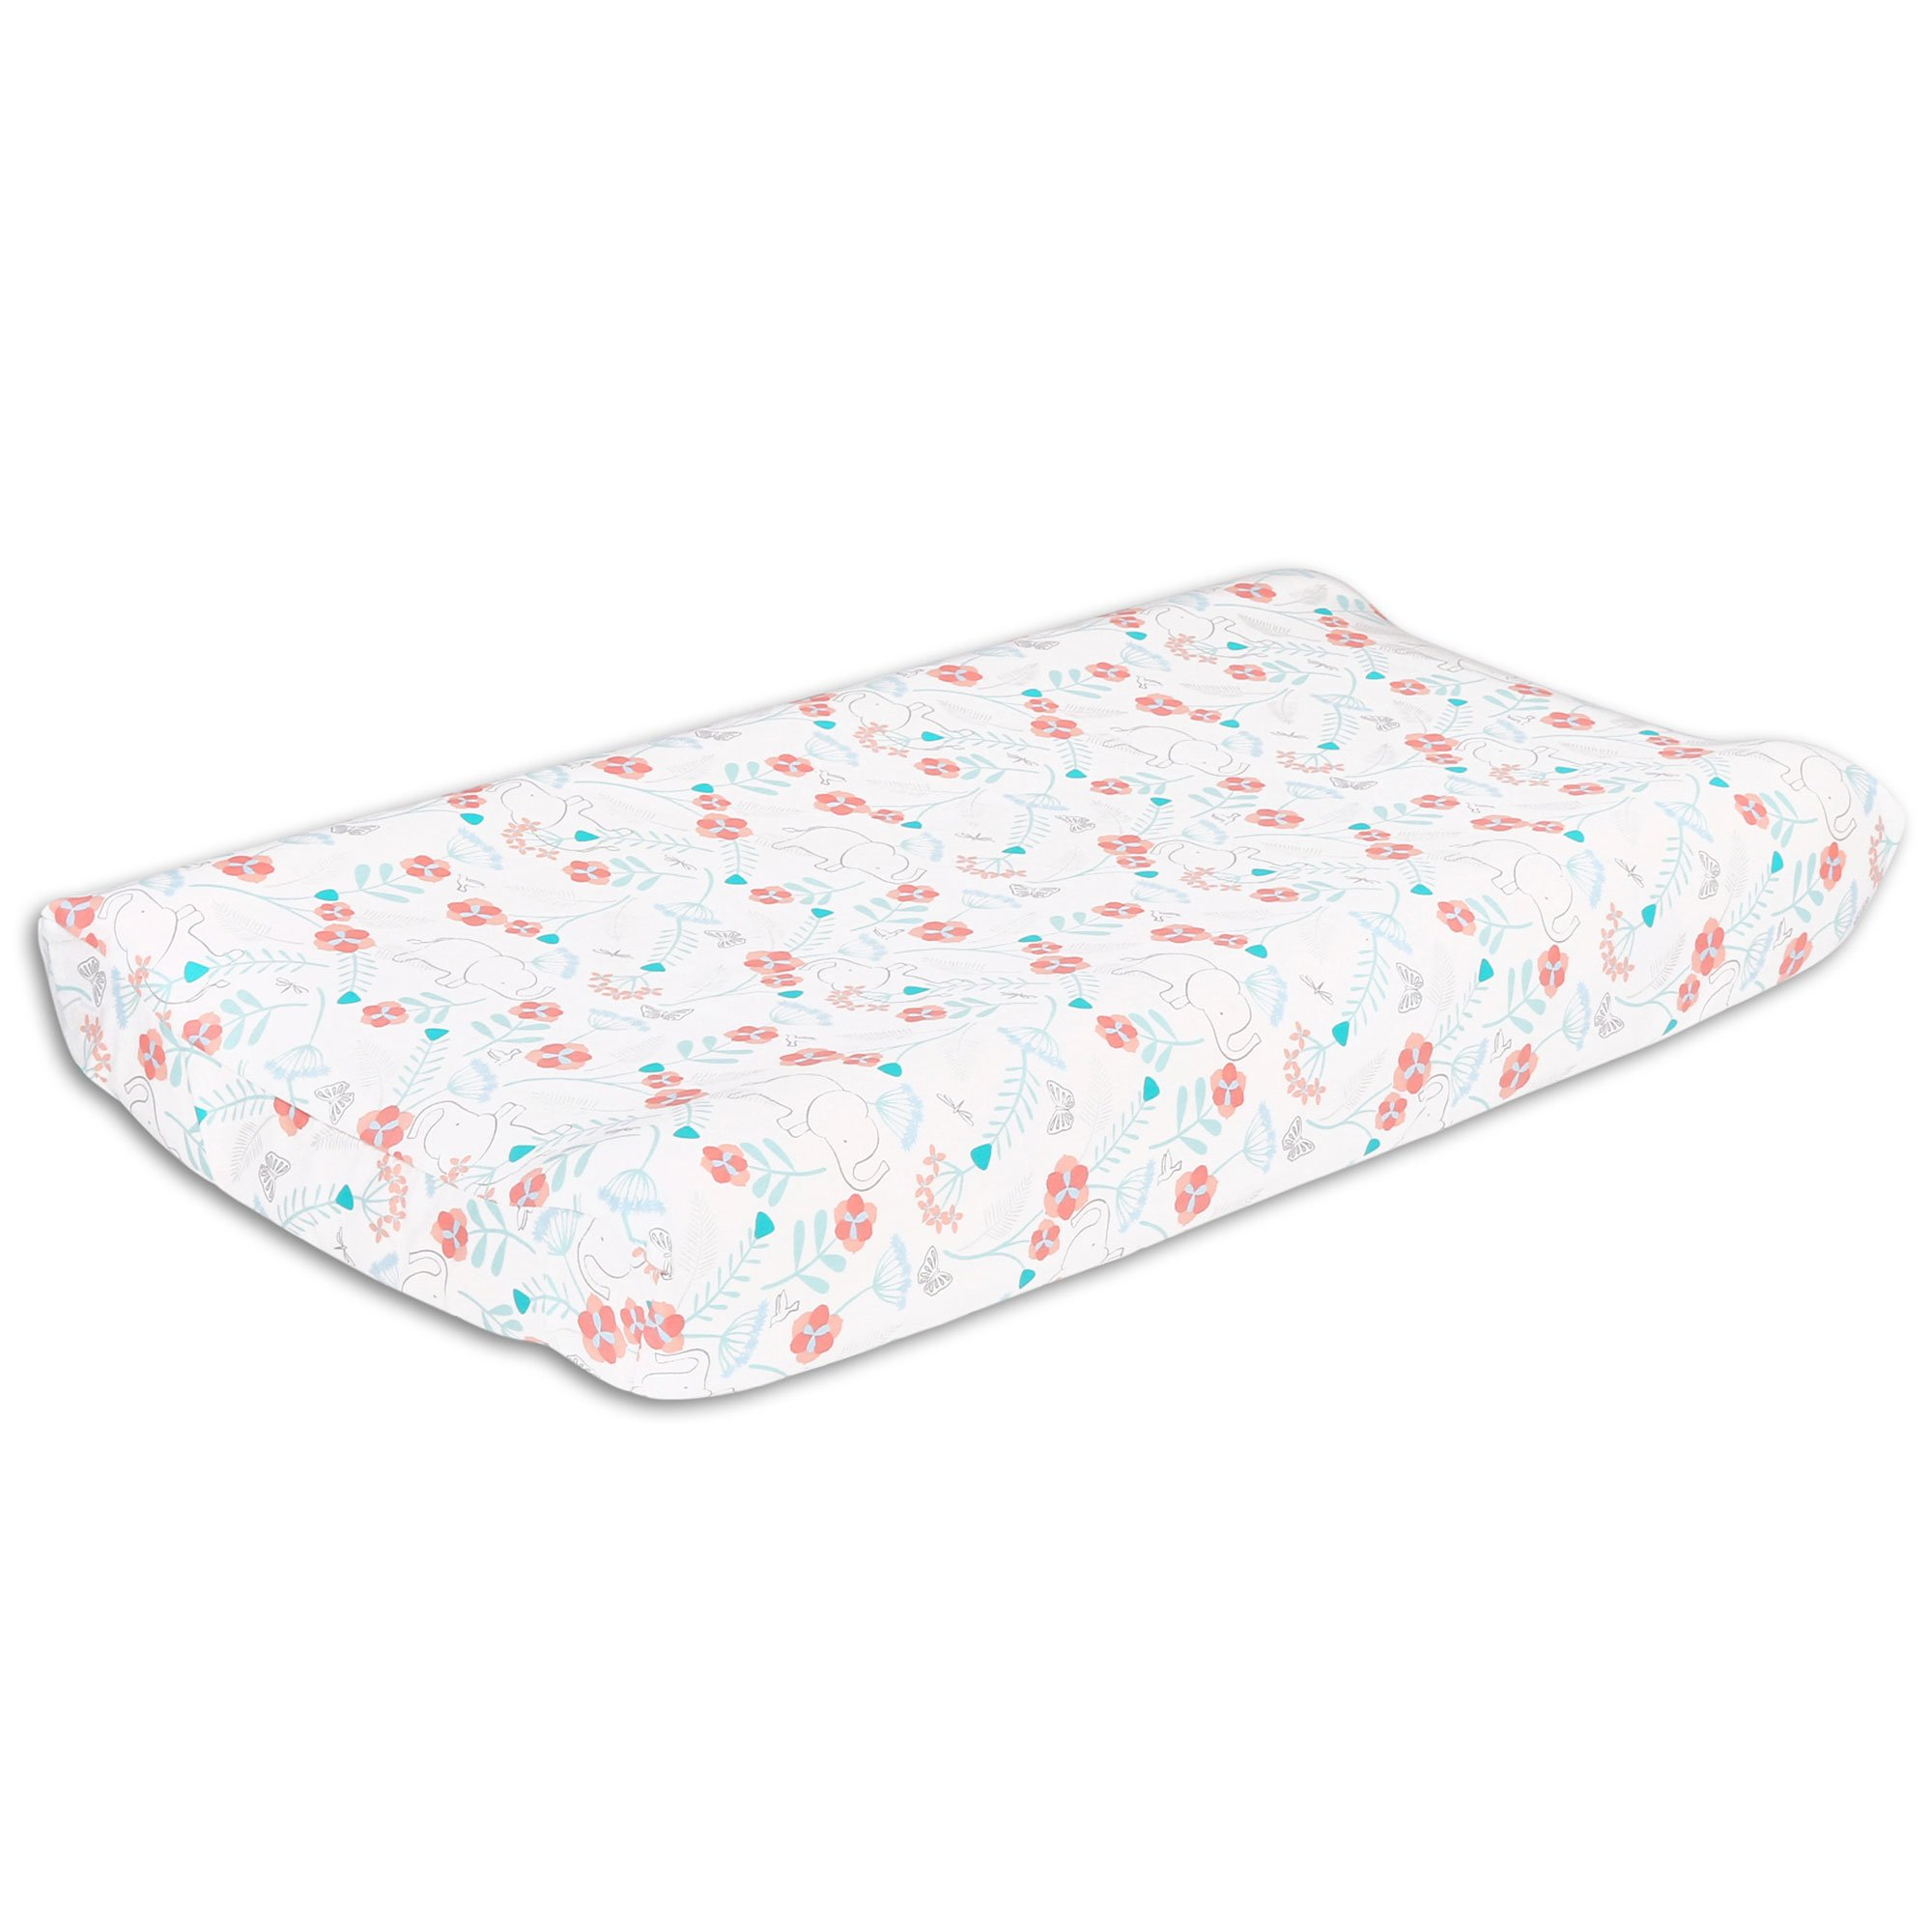 Safari Love Elephant Garden Baby Girl Changing Pad Cover by The Peanut Shell